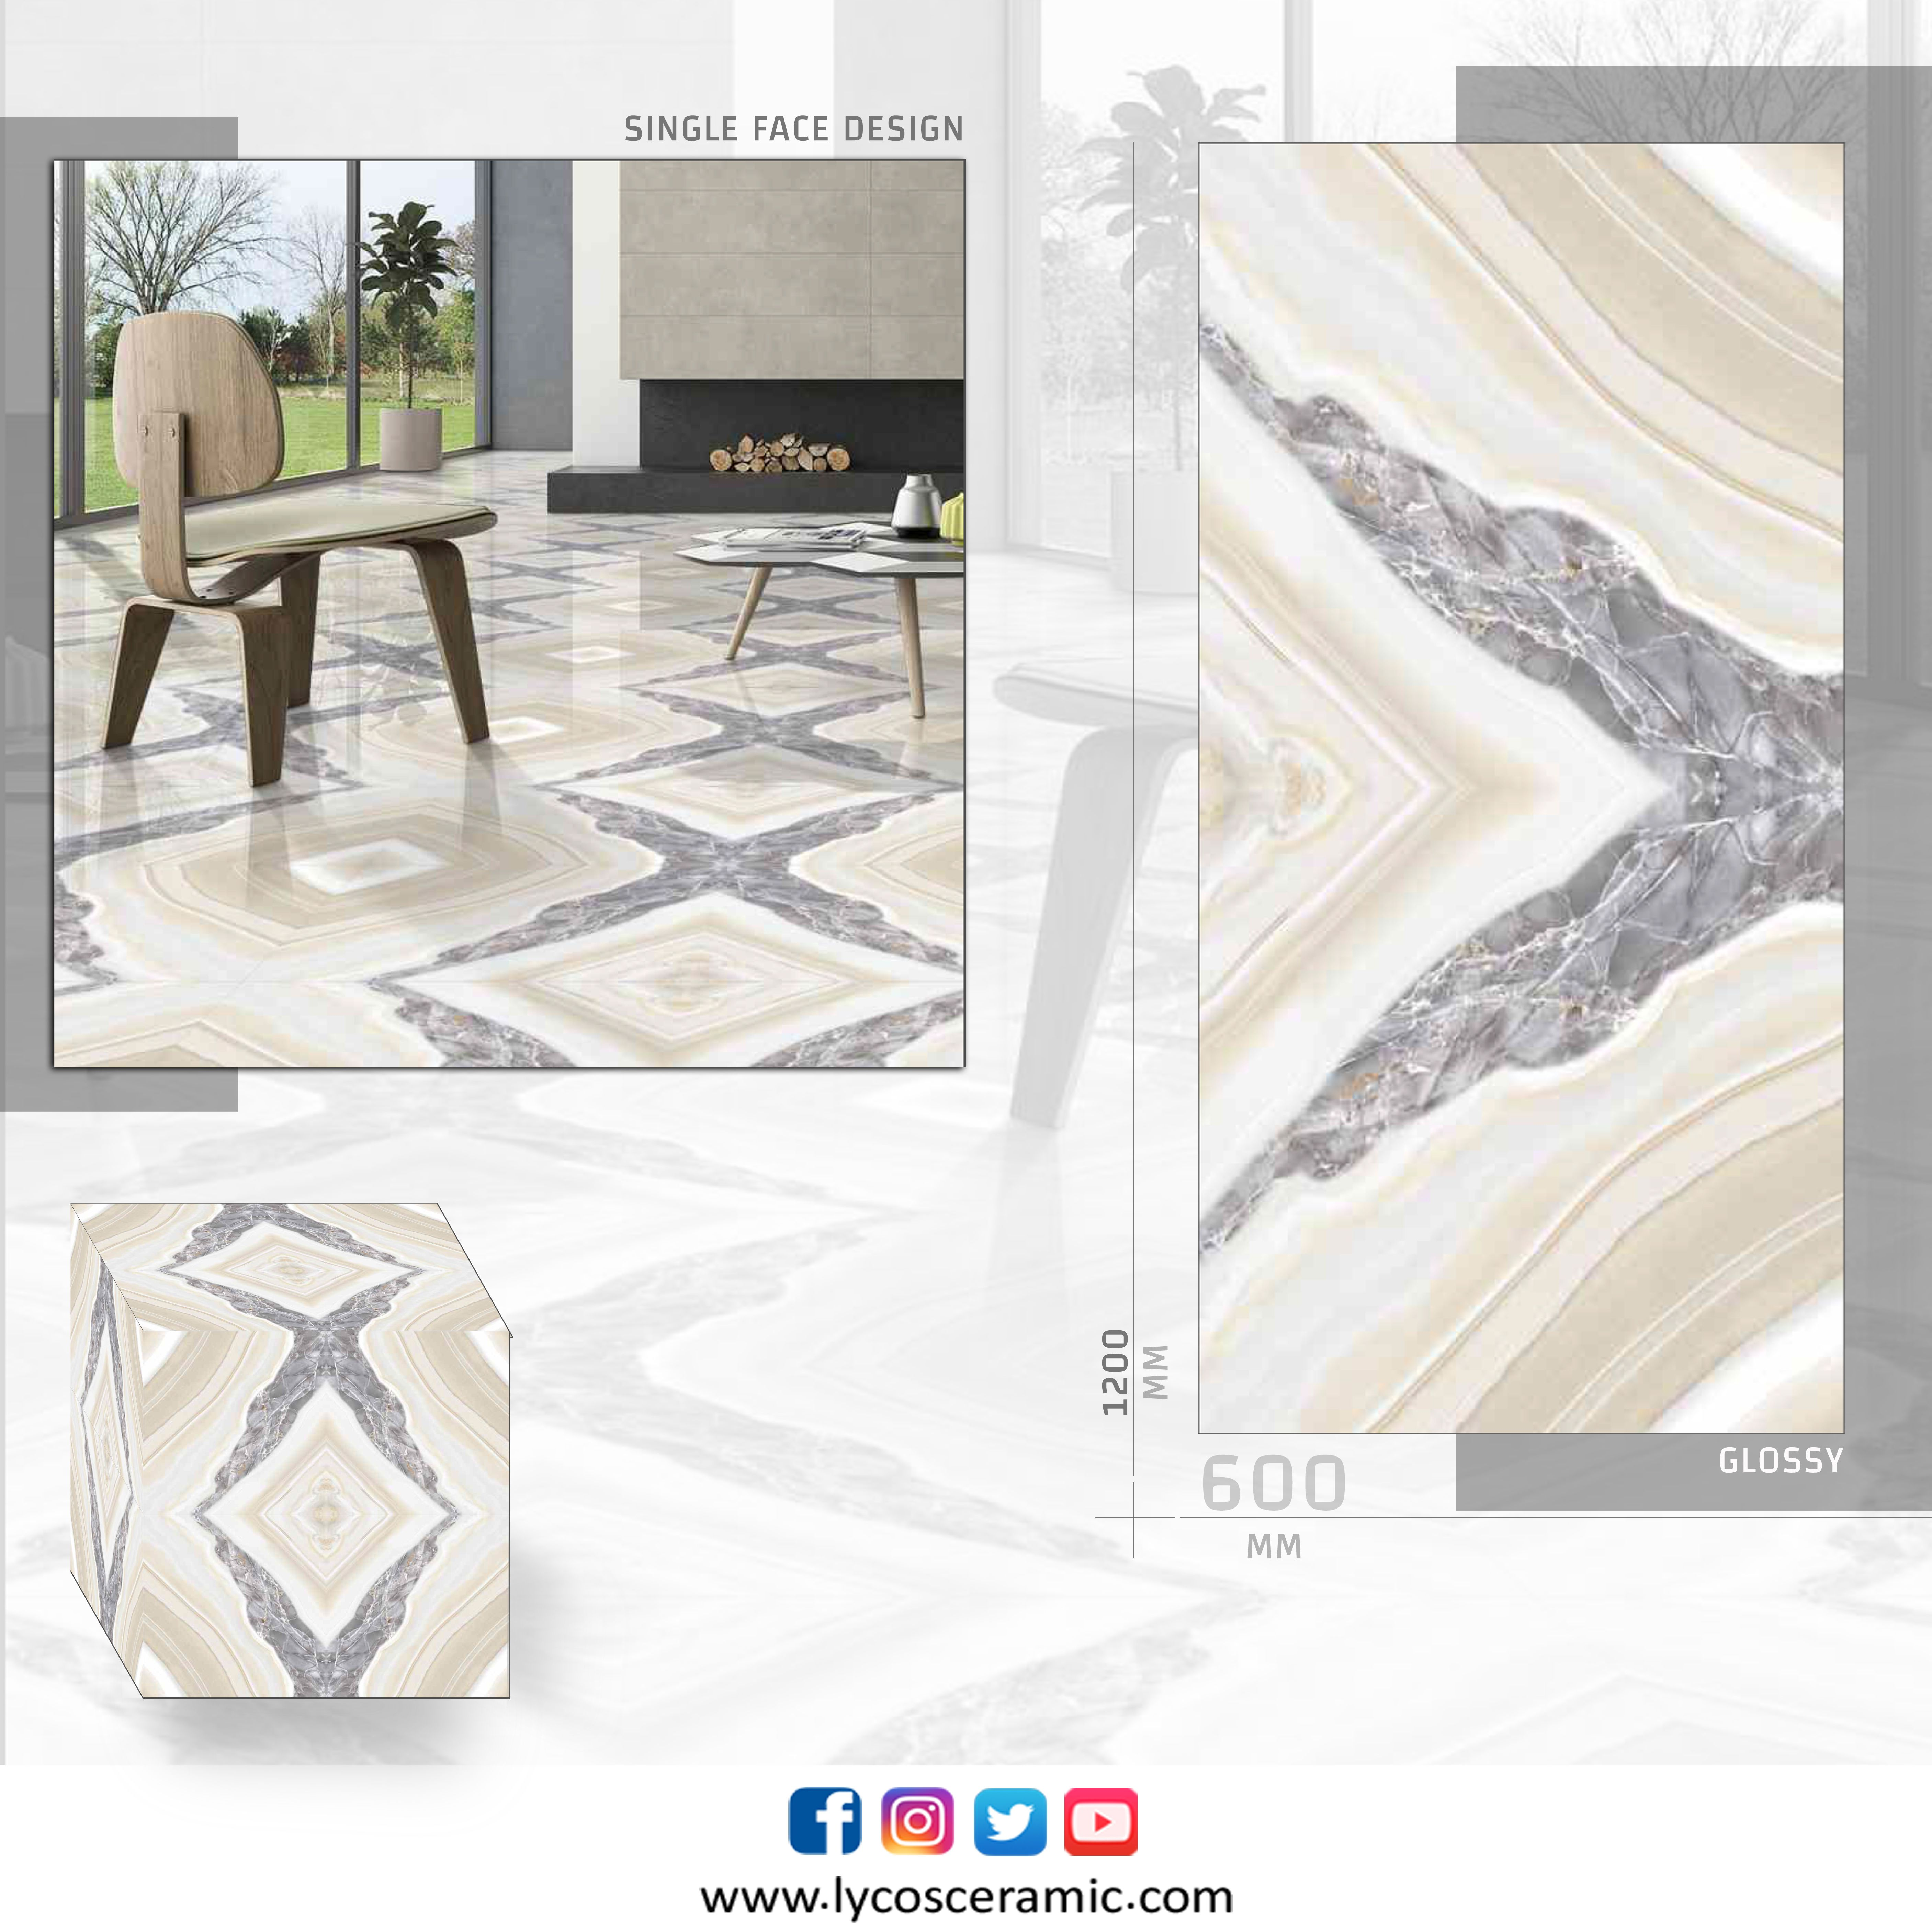 Designs To Make You Fall In Love Size 1200mm X 600mm Email Export Lycosceramic Com Singlefacedesign Floortile Lycosceramic In 2020 Porcelain Tile Tiles Design